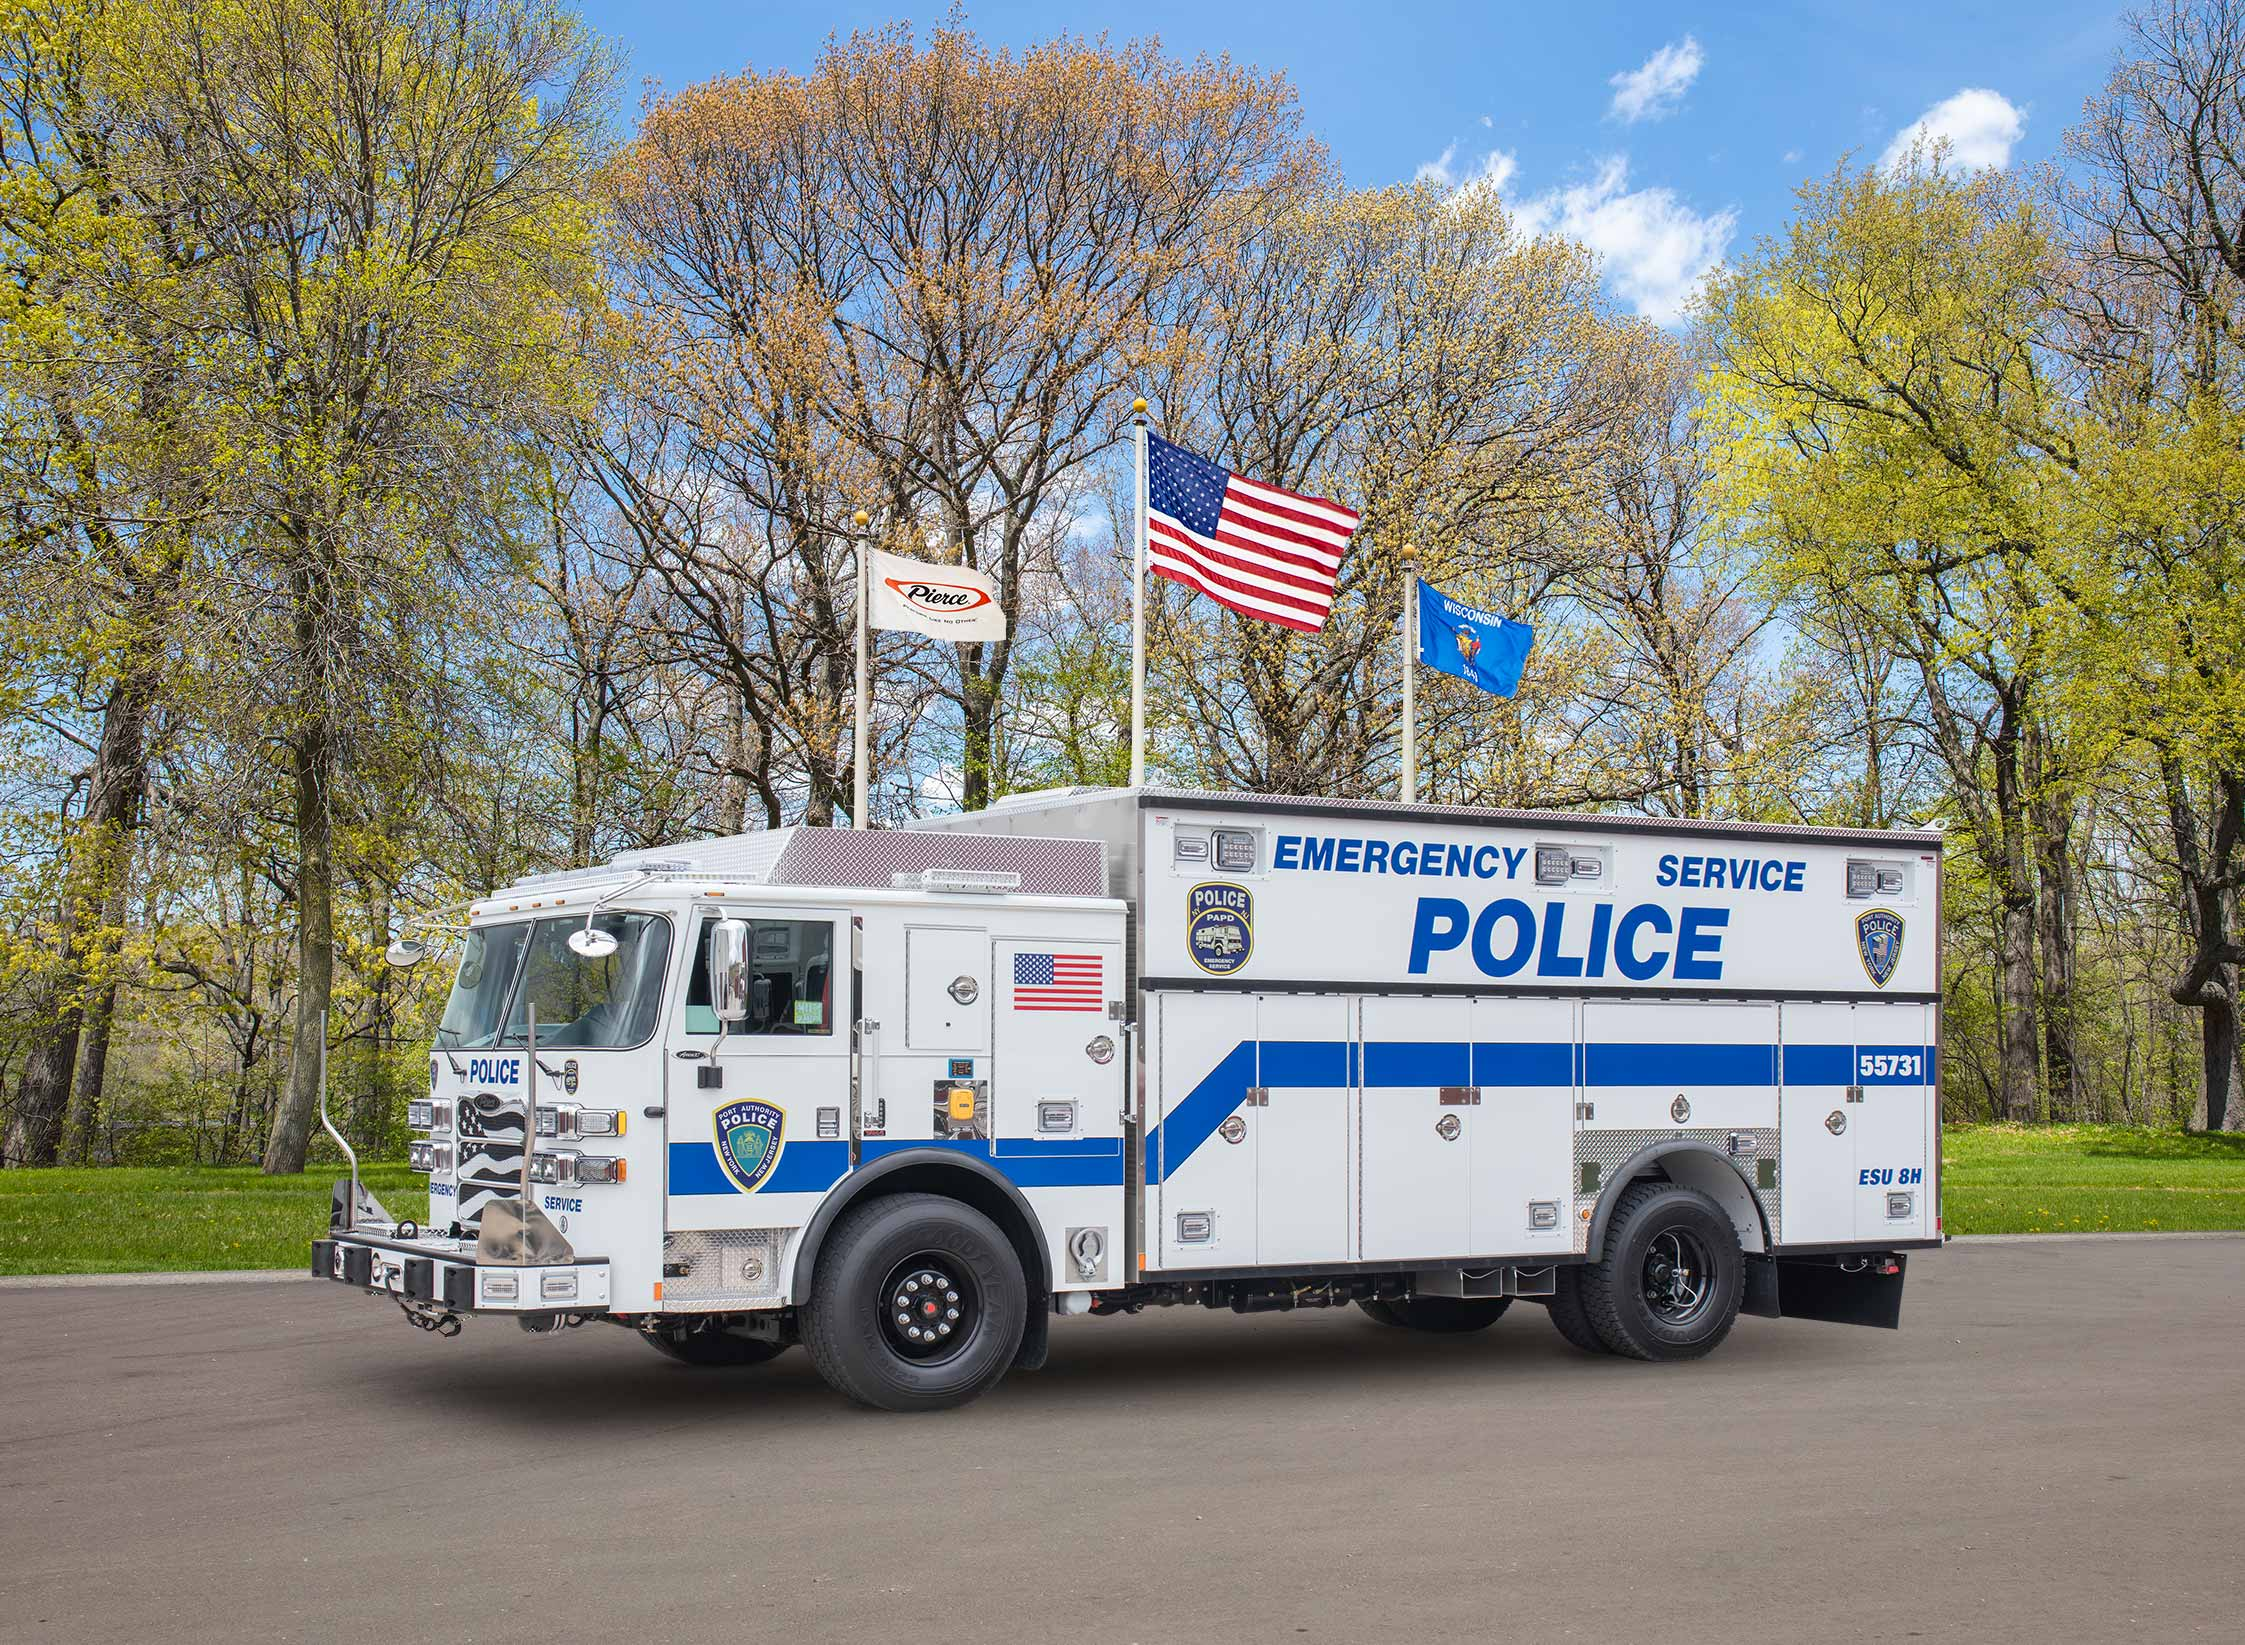 The Port Authority Emergency Service Police - Rescue